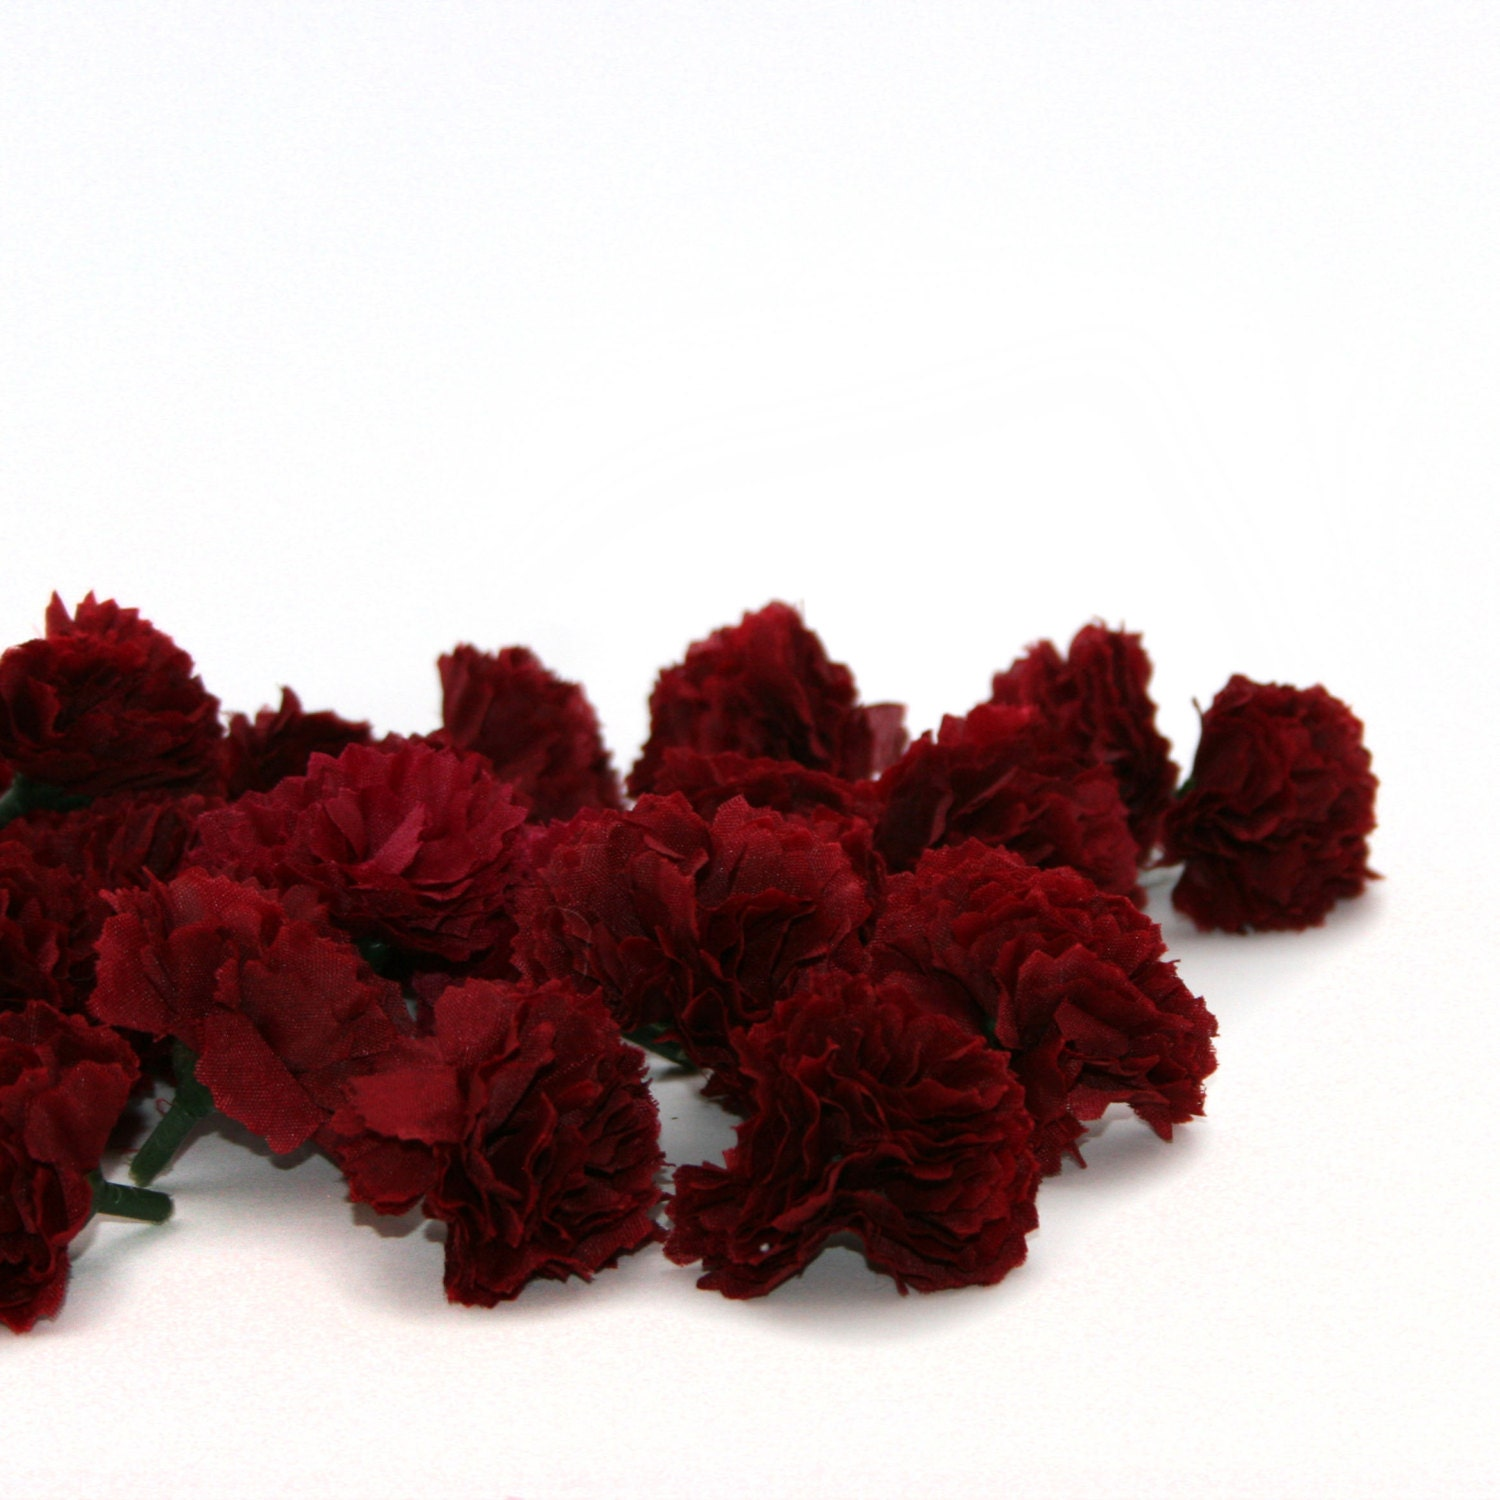 100 Burgundy or Dark Red Baby Carnations - Artificial Flowers from ...